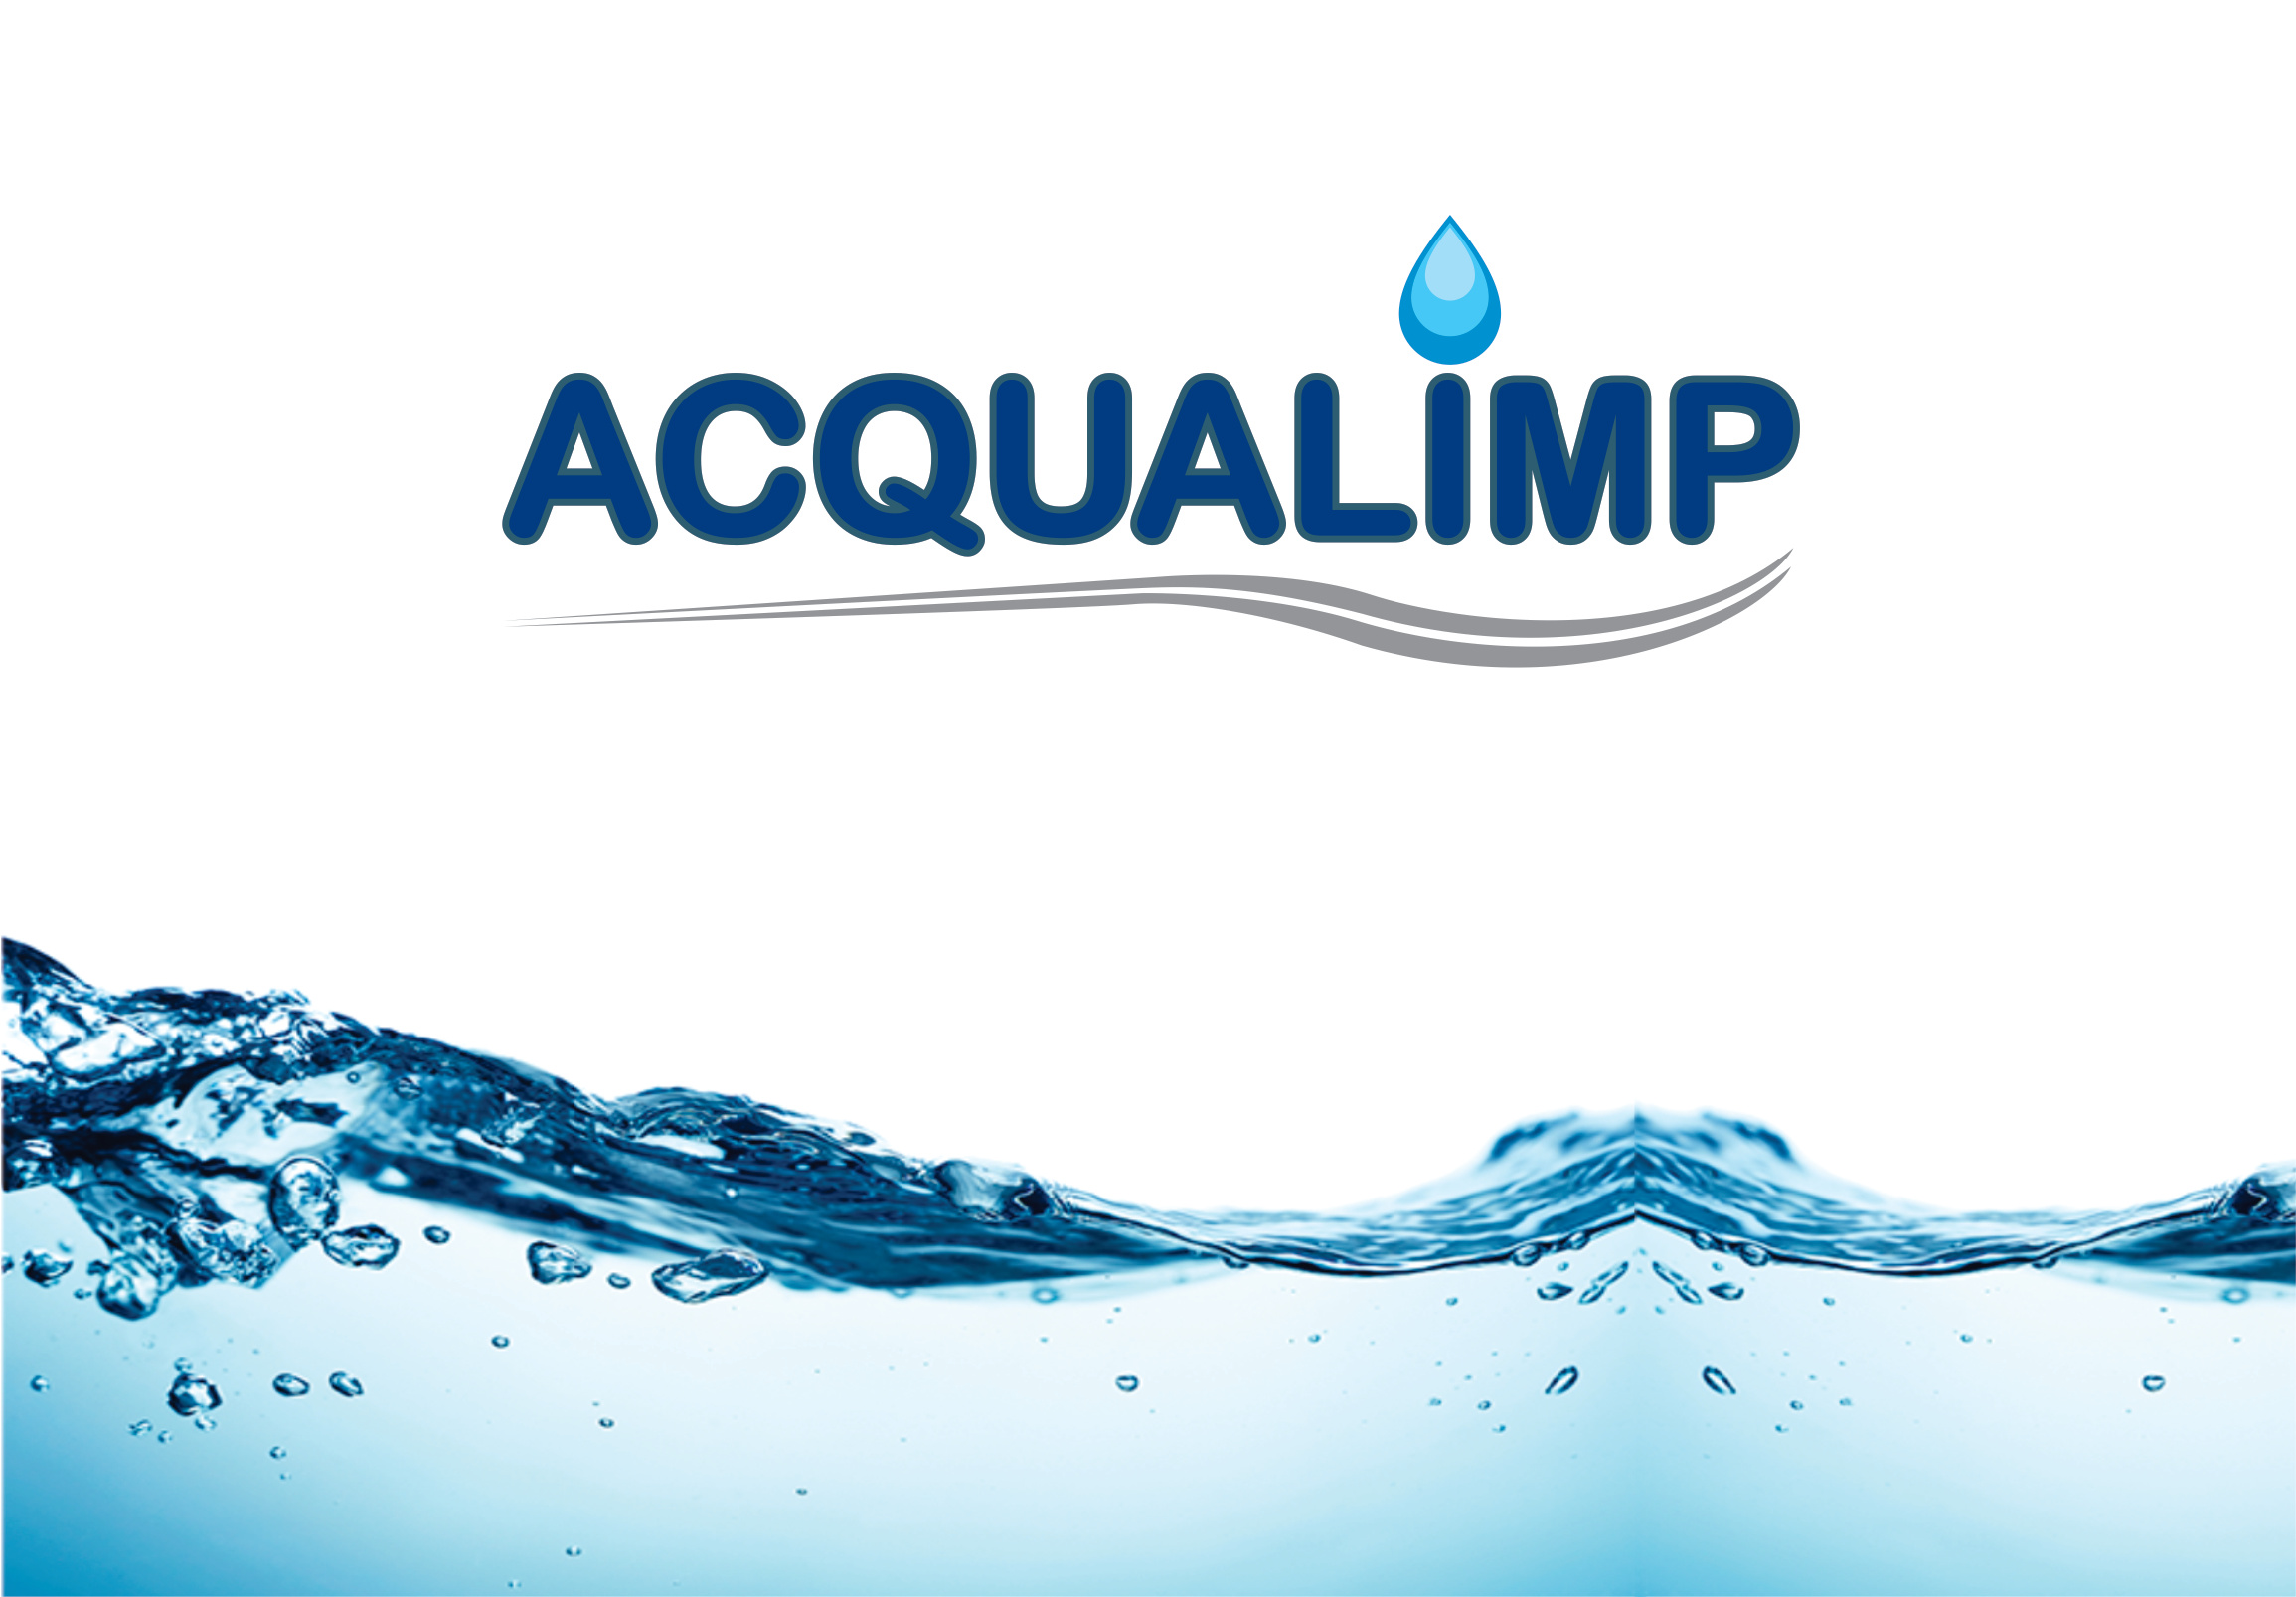 Cliente - Acqualimp